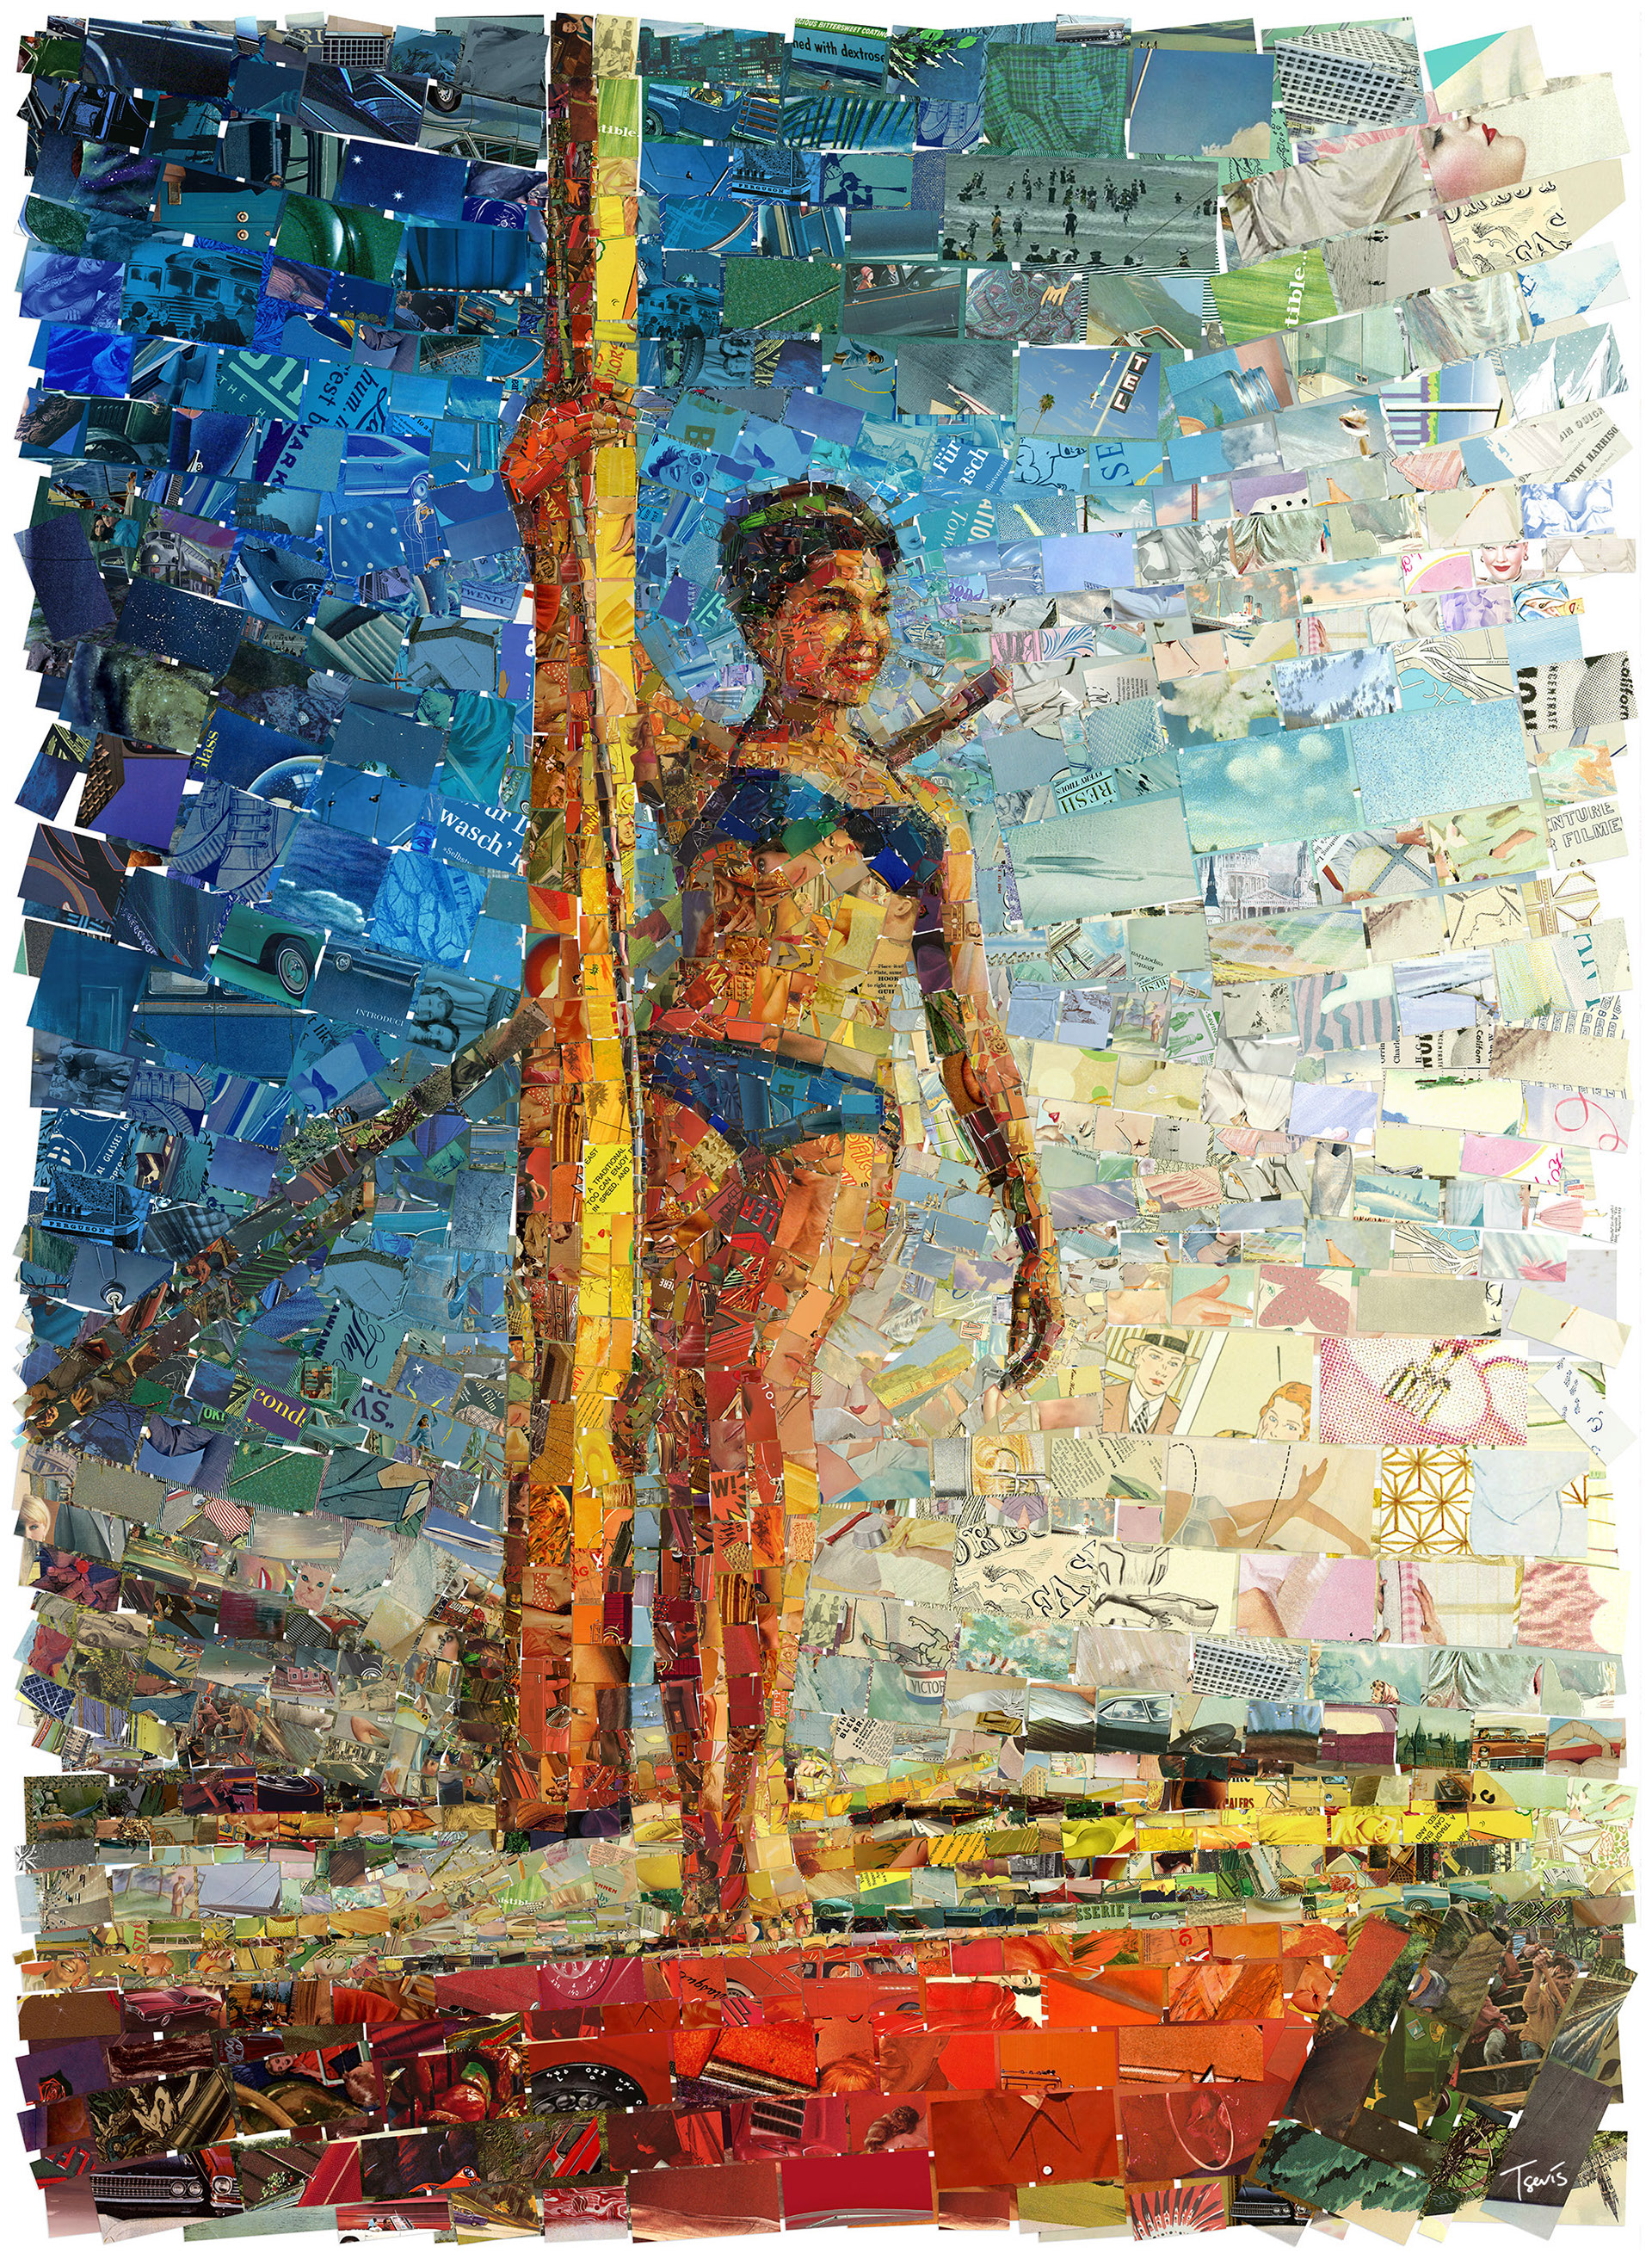 Endless summer By Charis Tsevis